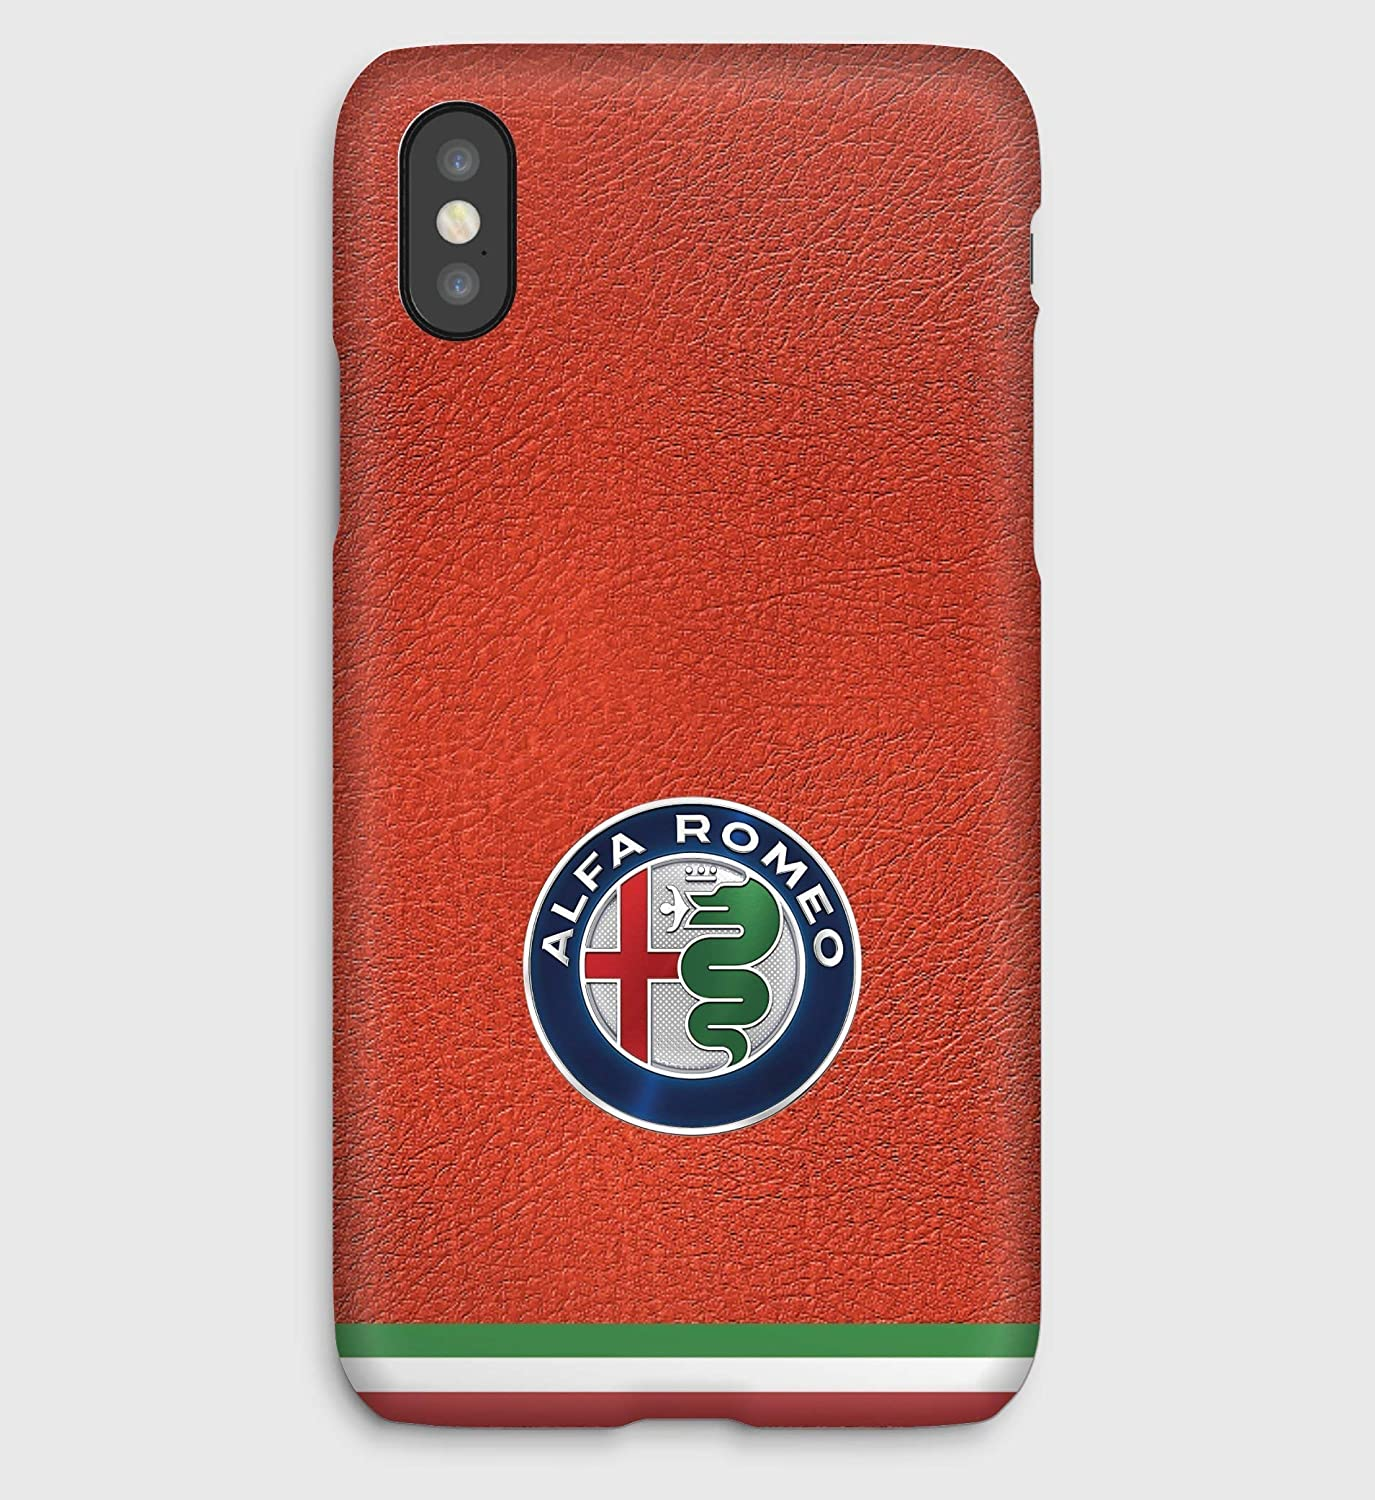 Leather & Alfa Romeo Cover iPhone X,XS,XS Max,XR, 8, 8+, 7, 7+, 6S, 6, 6S+, 6+, 5C, 5, 5S, 5SE, 4S, 4,